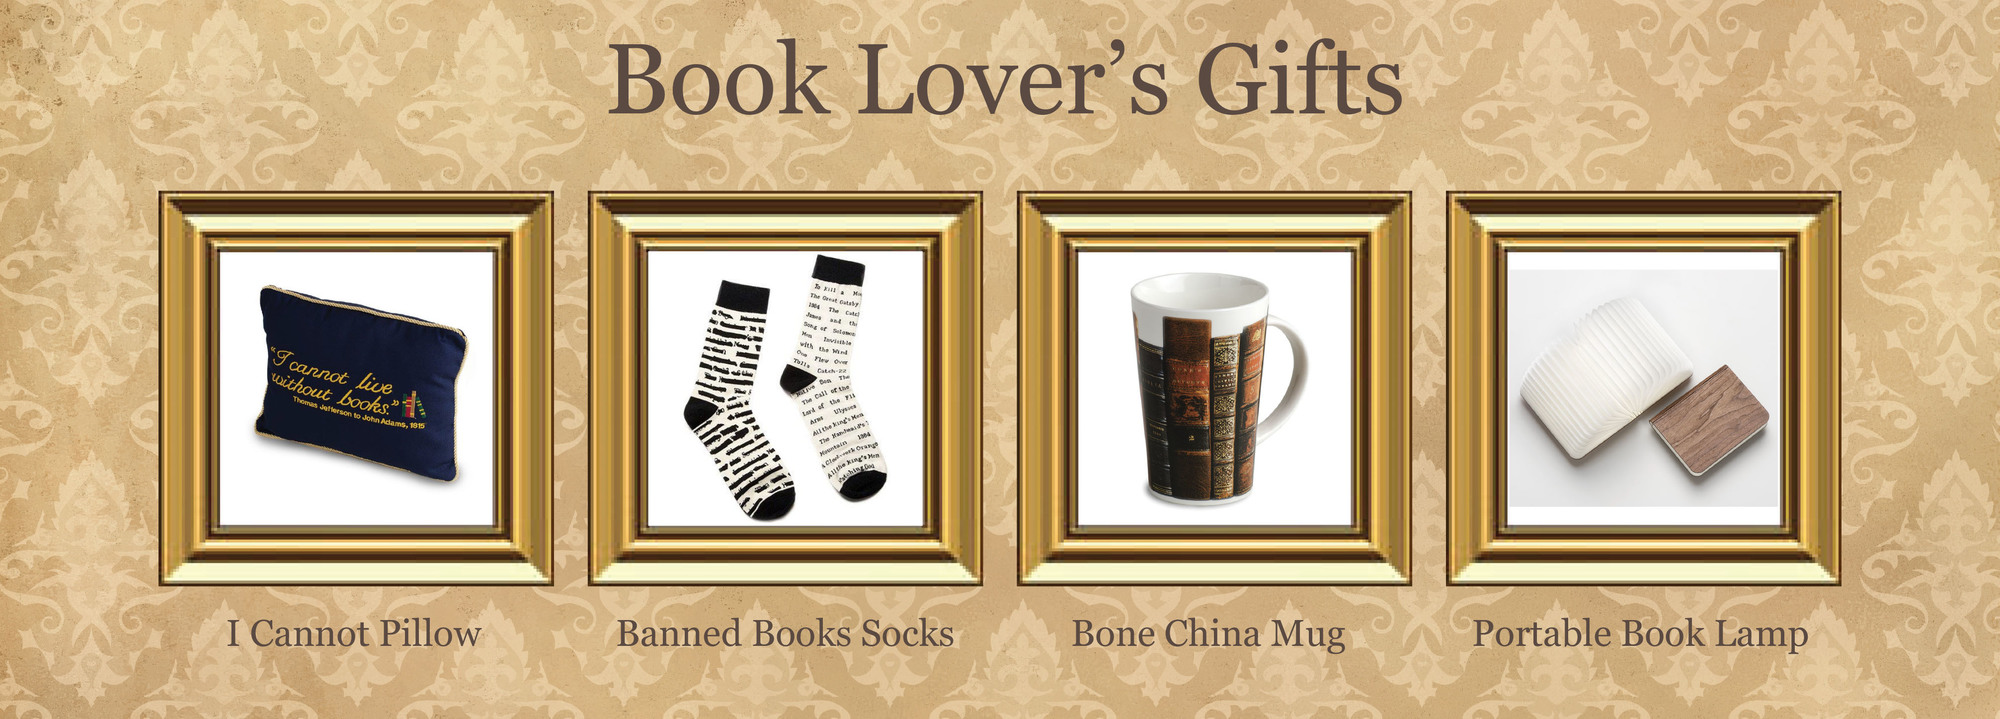 Book Lover 39 S Gift List Free Shipping